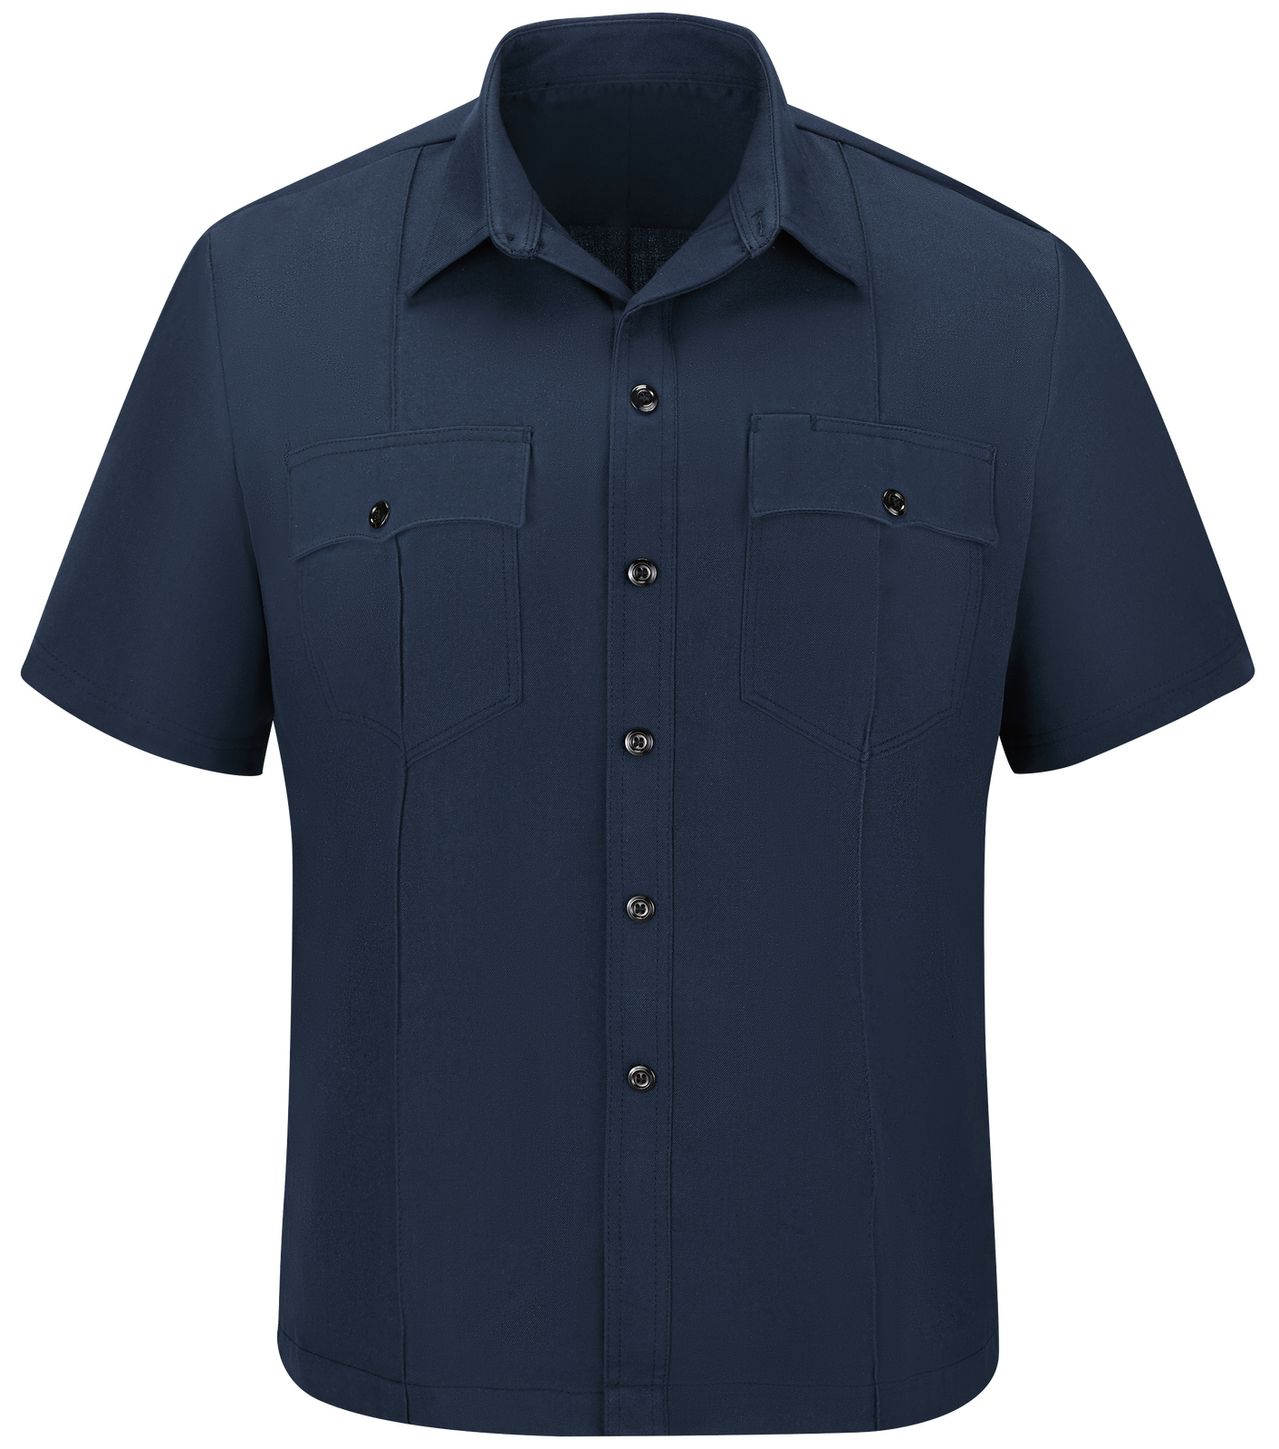 workrite-fr-shirt-fsu2-untucked-uniform-station-no-73-navy-front.jpg